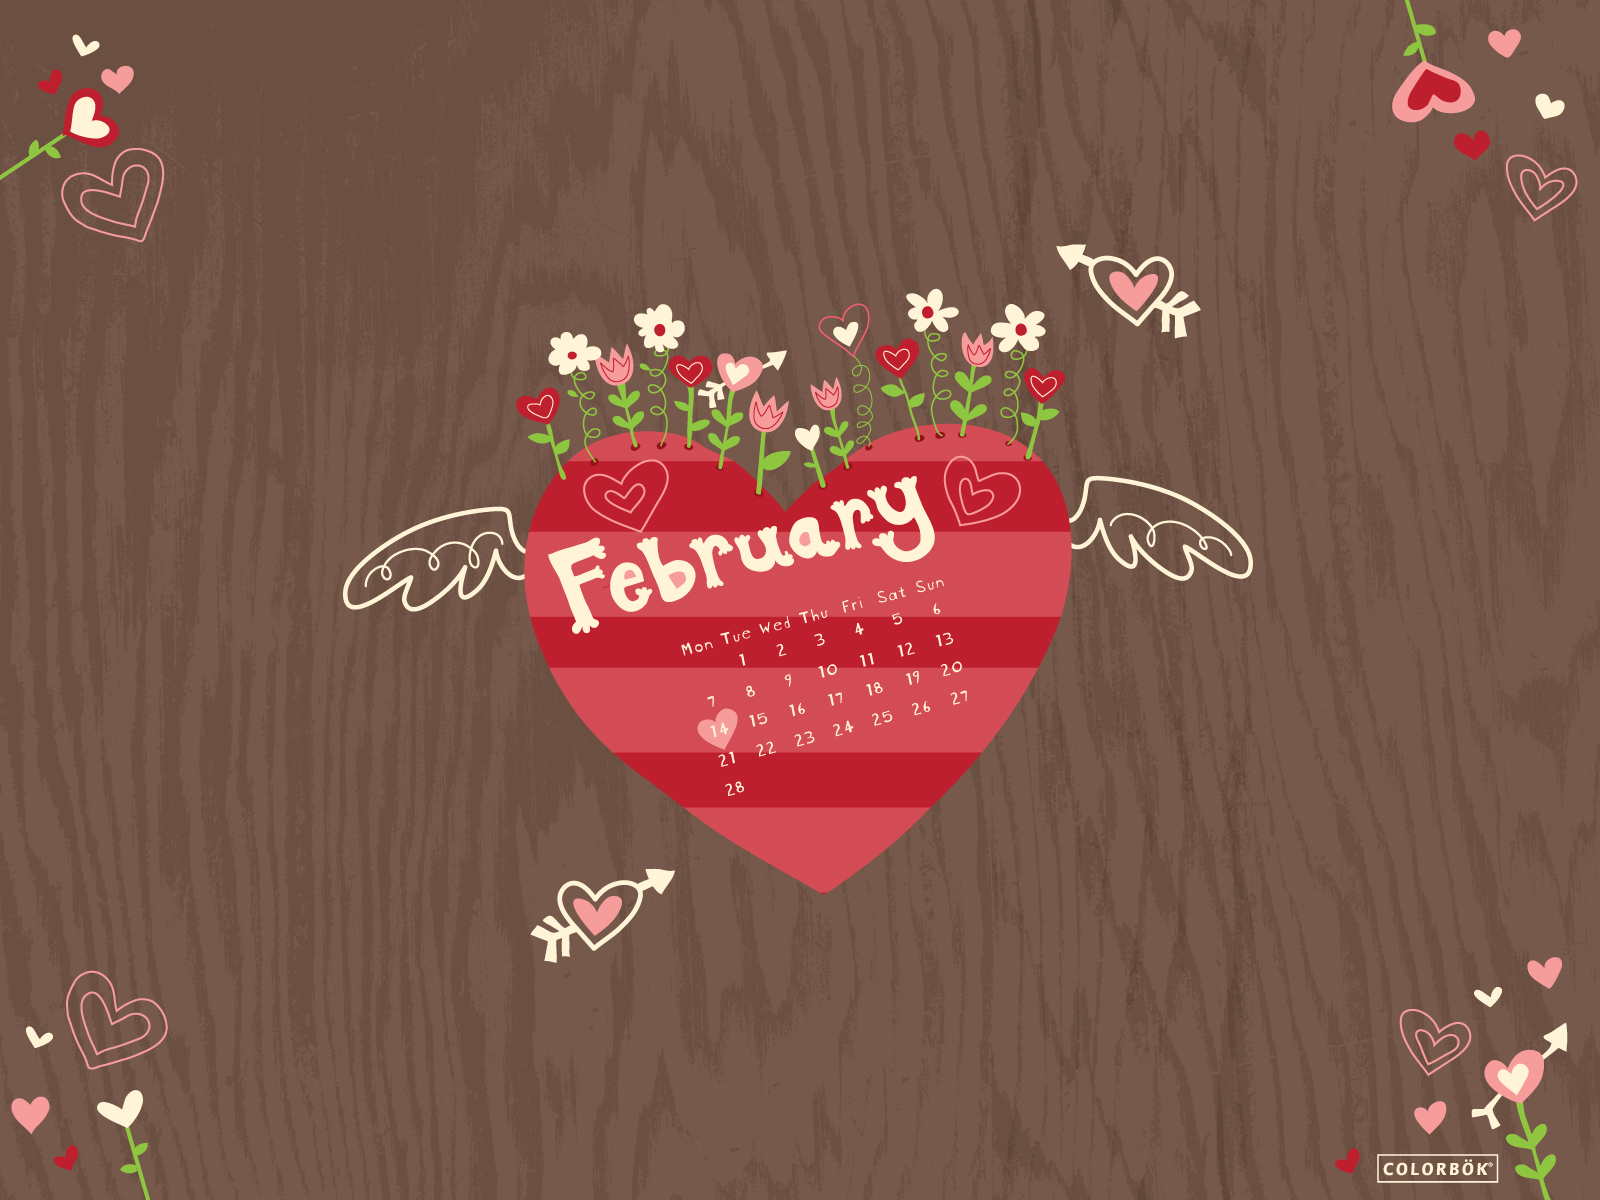 February Calendar Wallpaper Hd : February wallpapers calendar hd